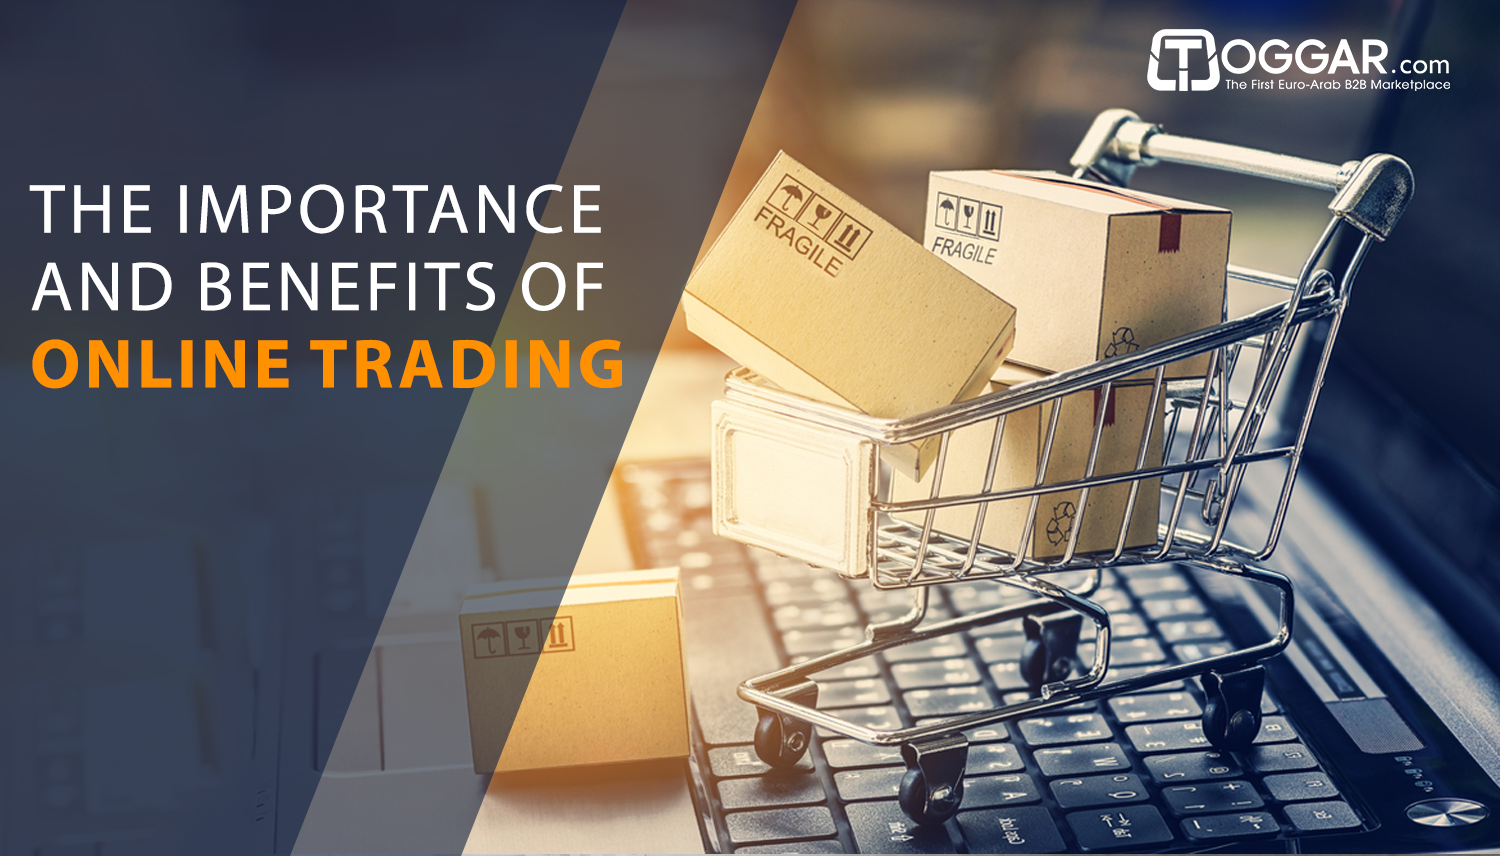 The Importance and Benefits of Online Trading